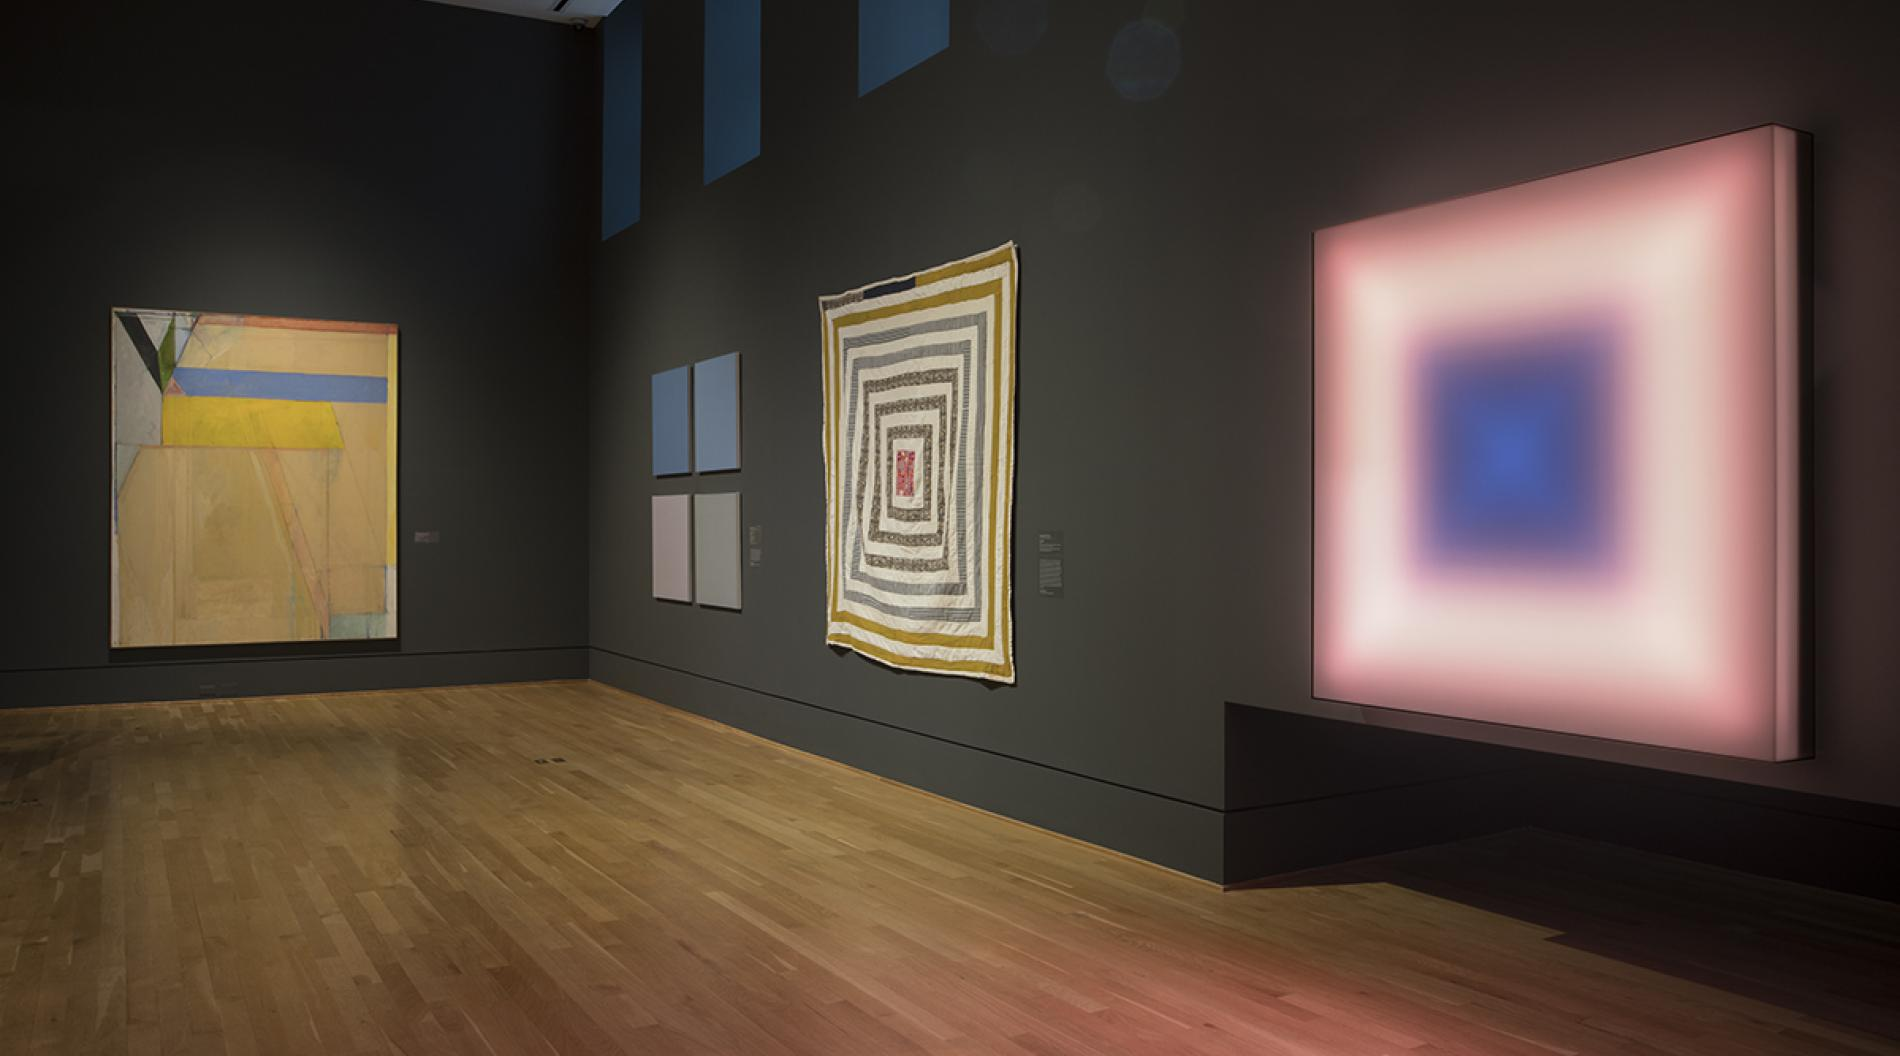 Photograph of four colorful artworks in a museum gallery with dark blue walls